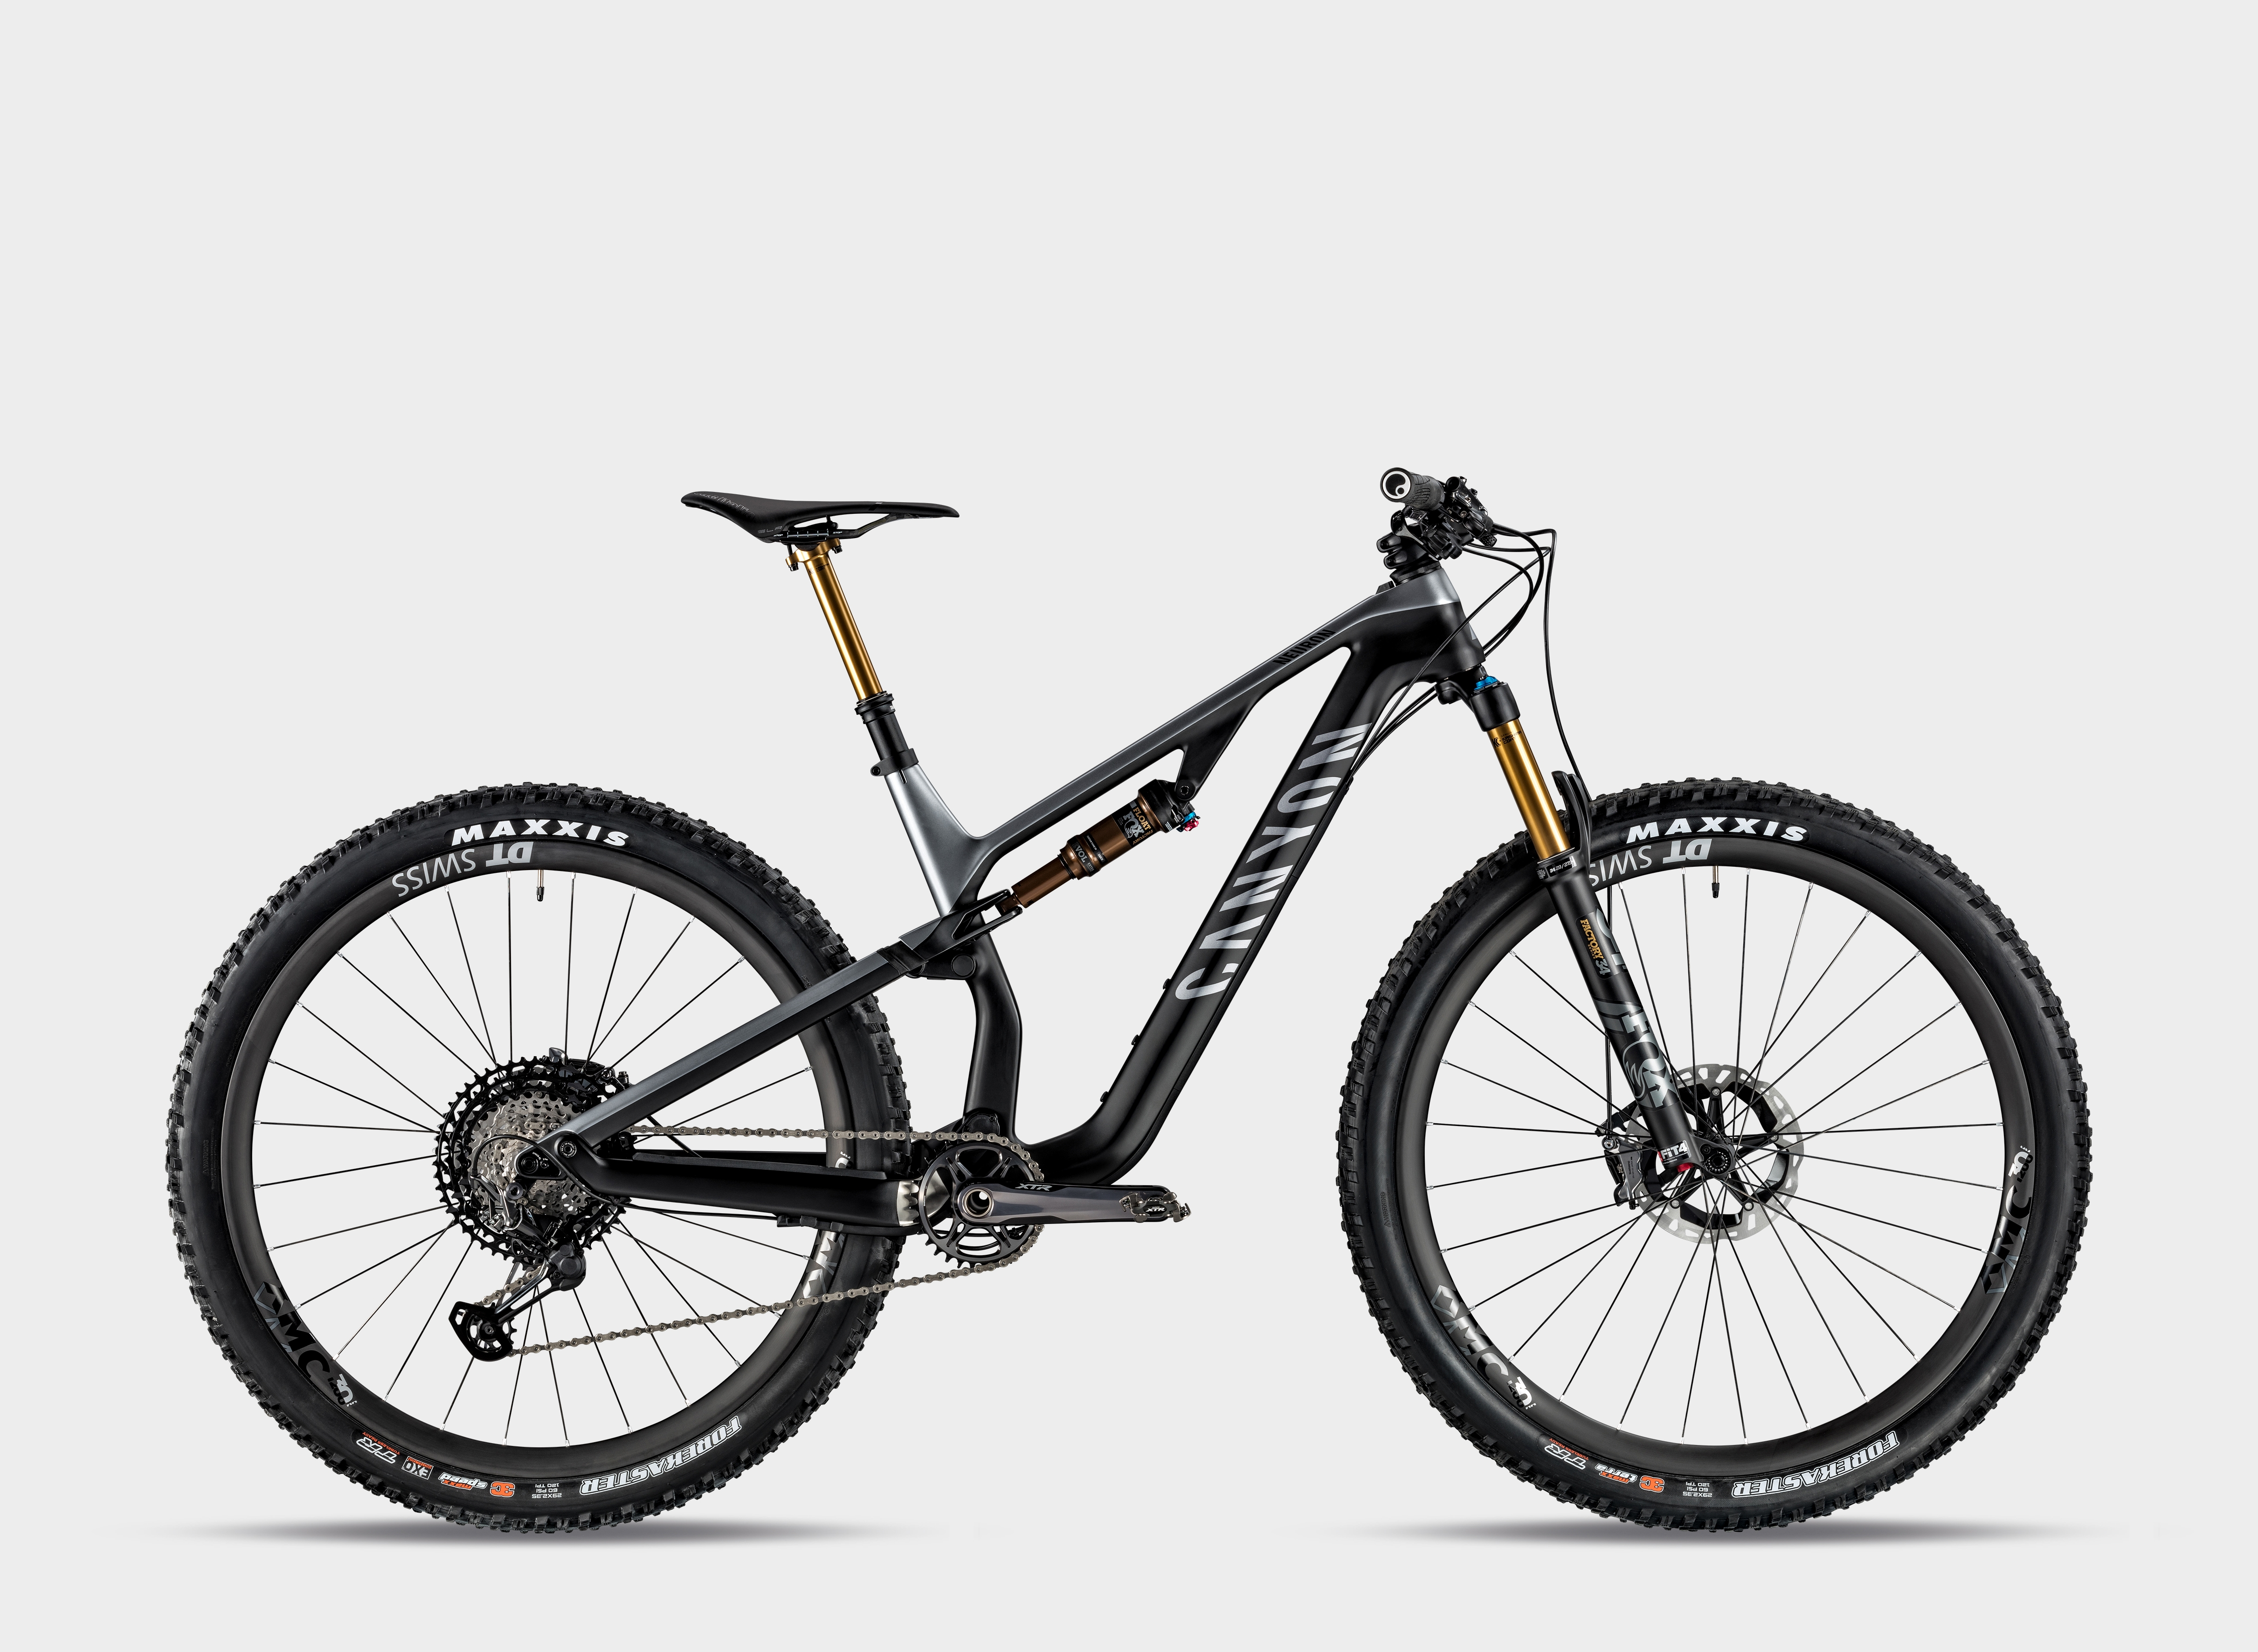 7b19c66cd45 CANYON UPDATES AND EXPANDS ITS NEURON FAMILY | SPARK BIKE